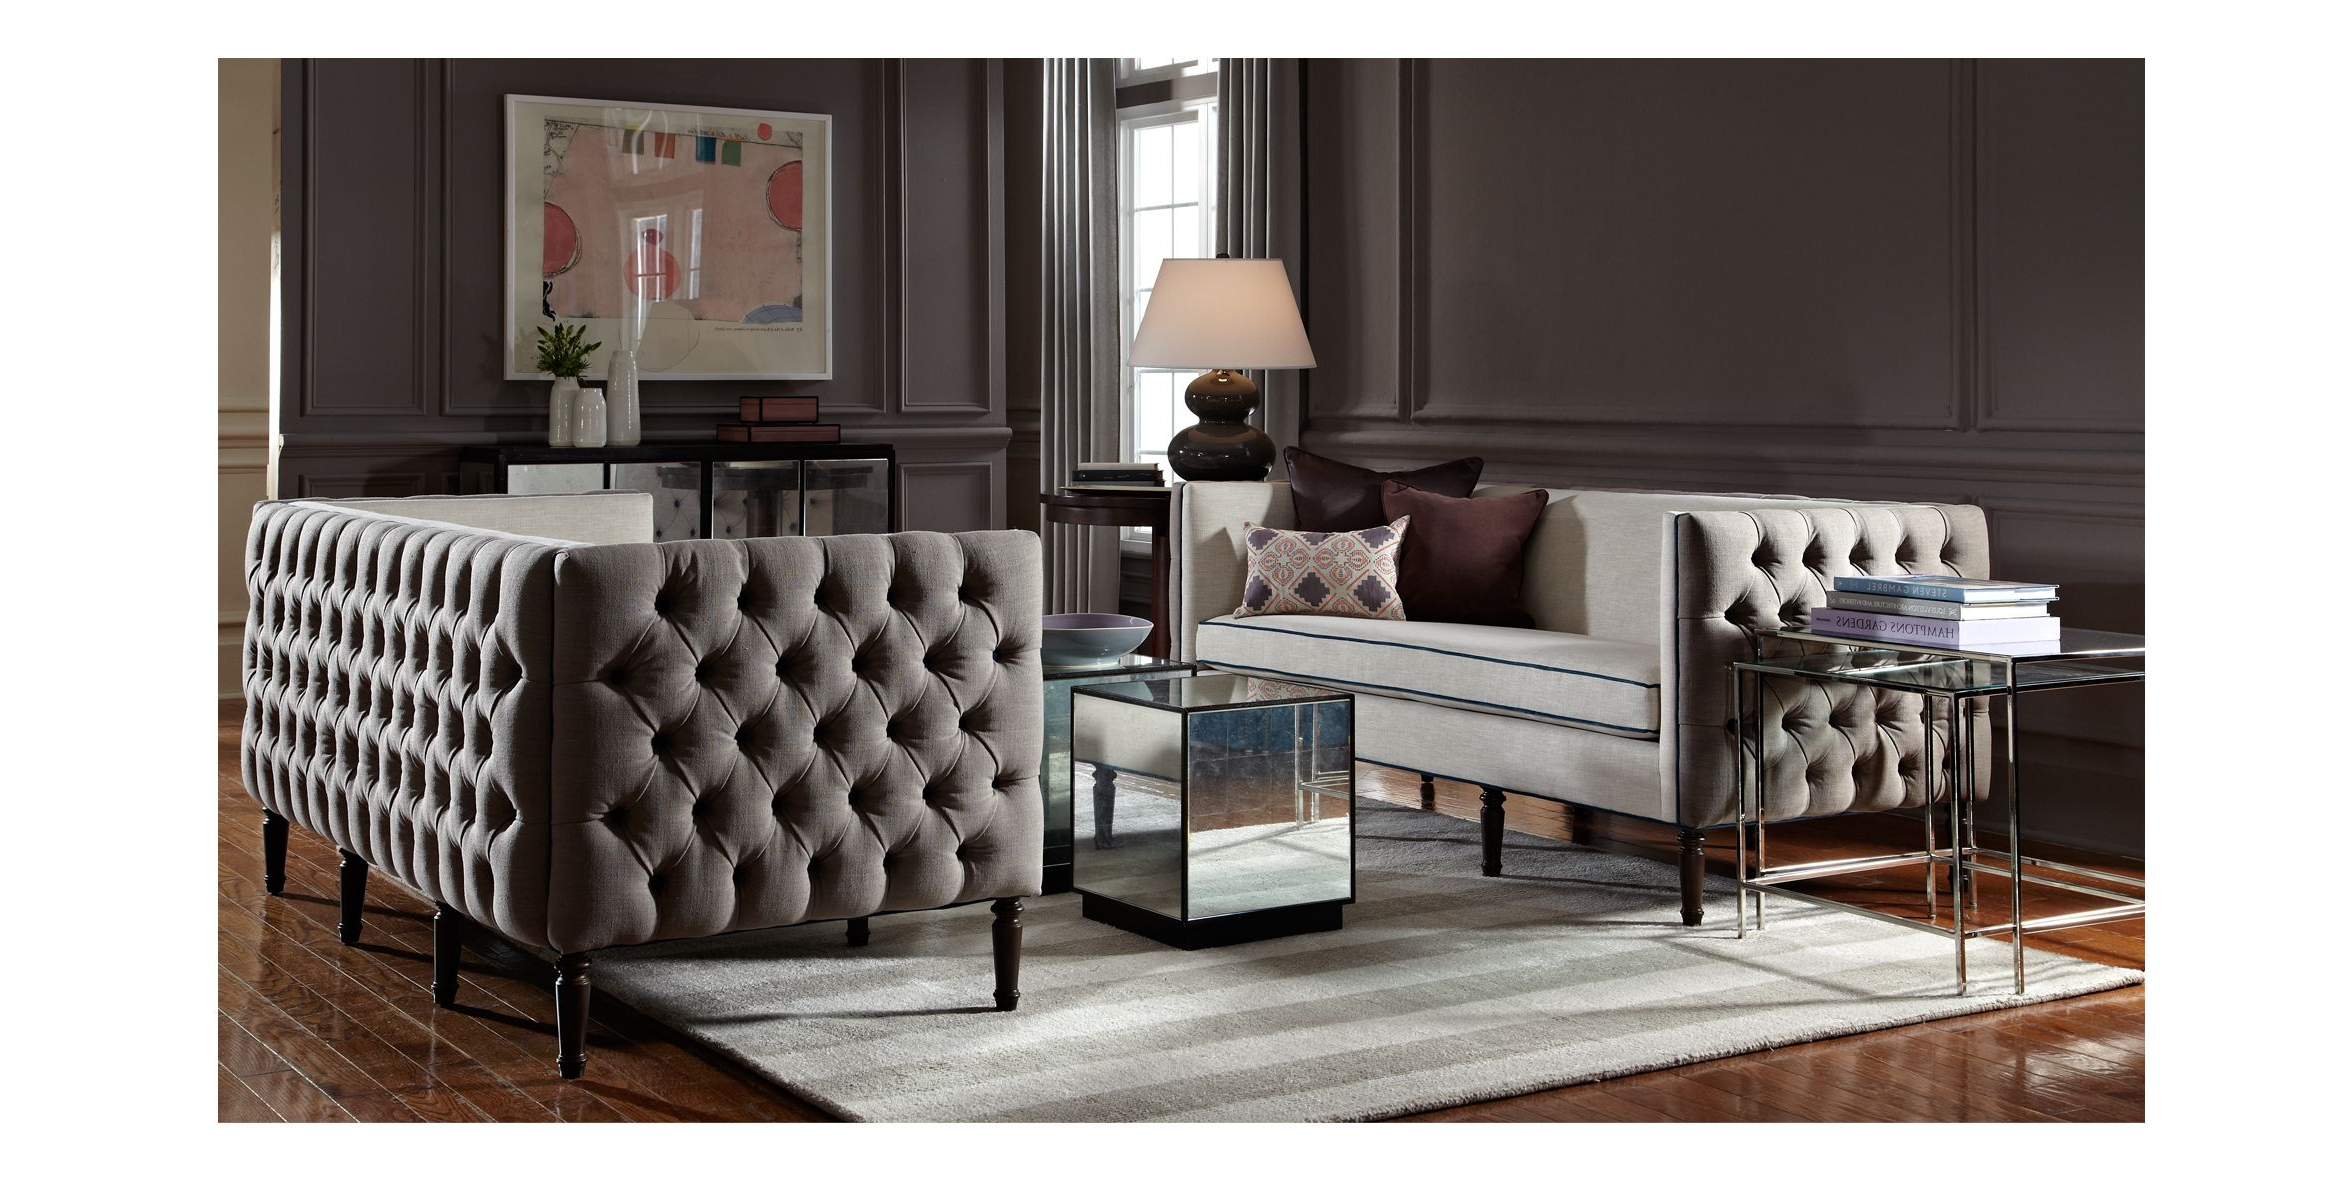 Modern Tufted Sofa – Google Search | Turn Of The Century Moderne In Parsons Grey Solid Surface Top & Dark Steel Base 48X16 Console Tables (View 13 of 20)